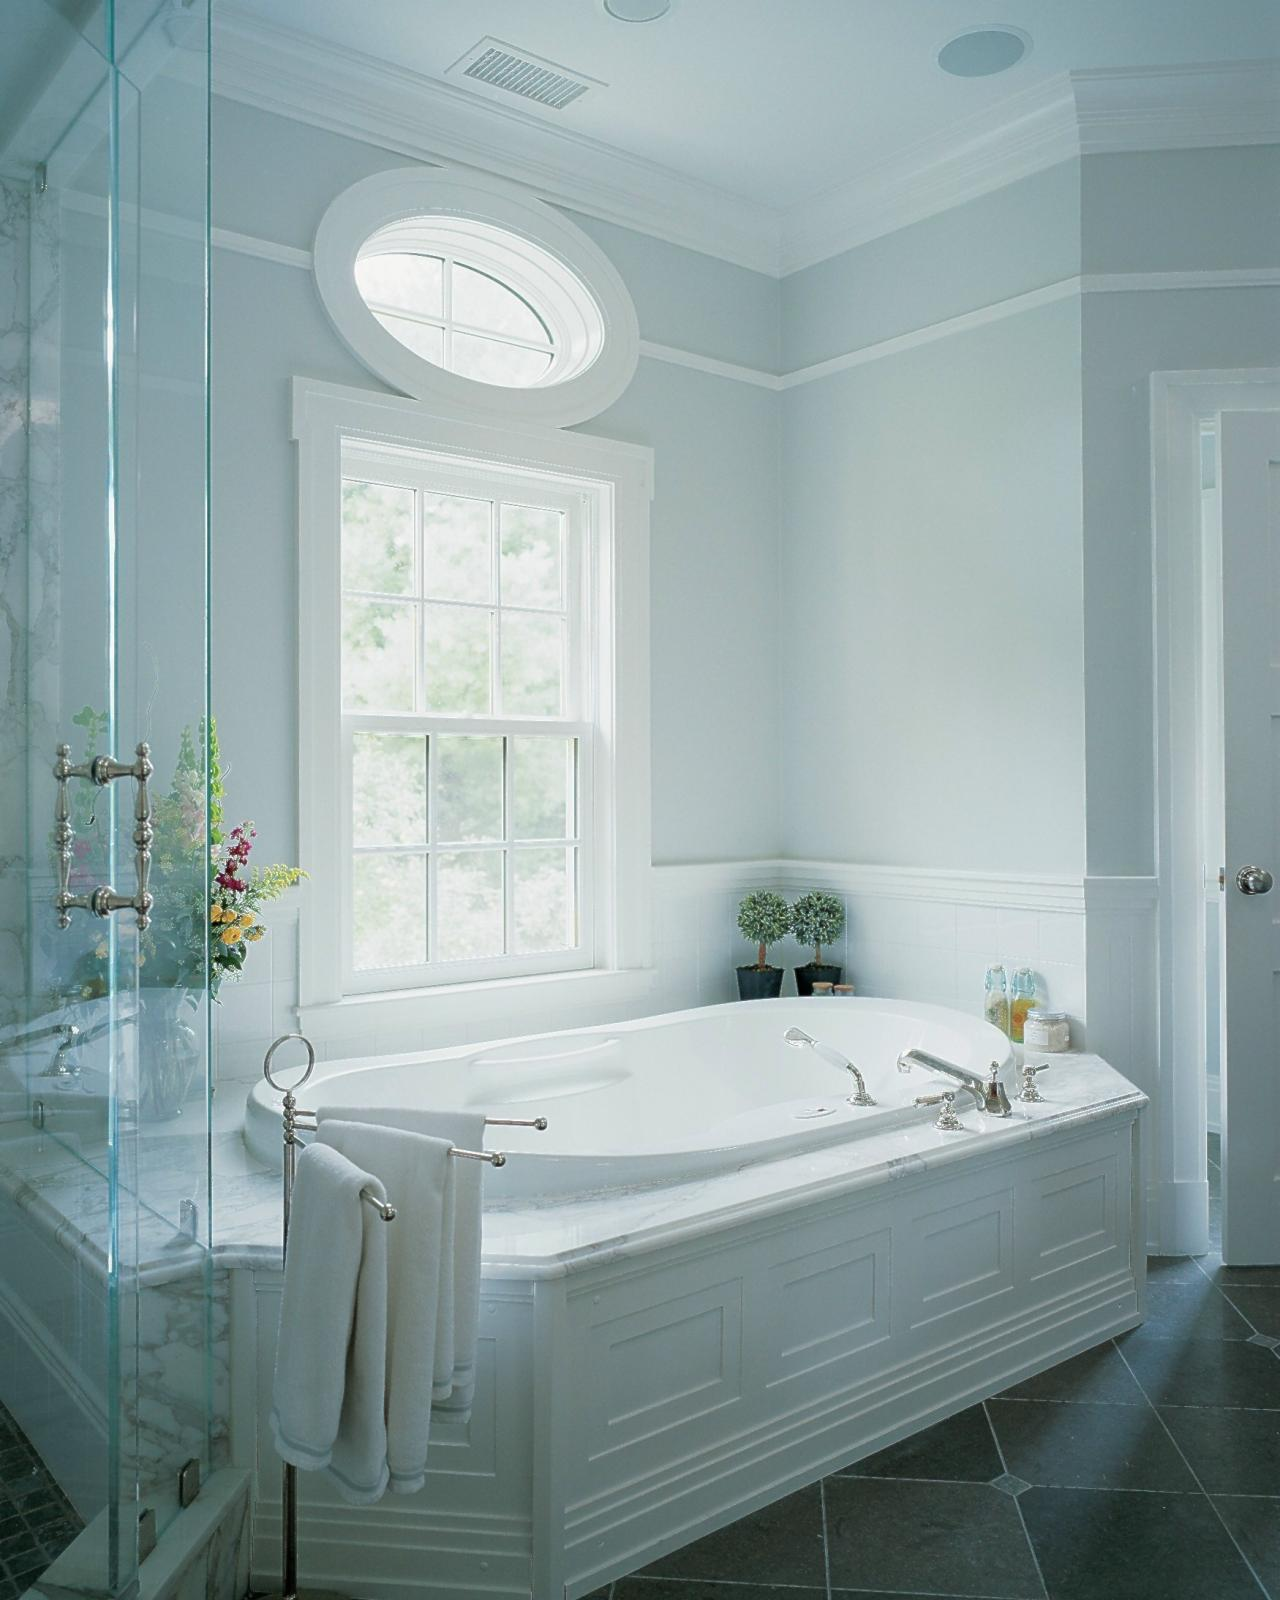 Bathtub styles options pictures ideas tips from hgtv Beautiful bathrooms and bedrooms magazine